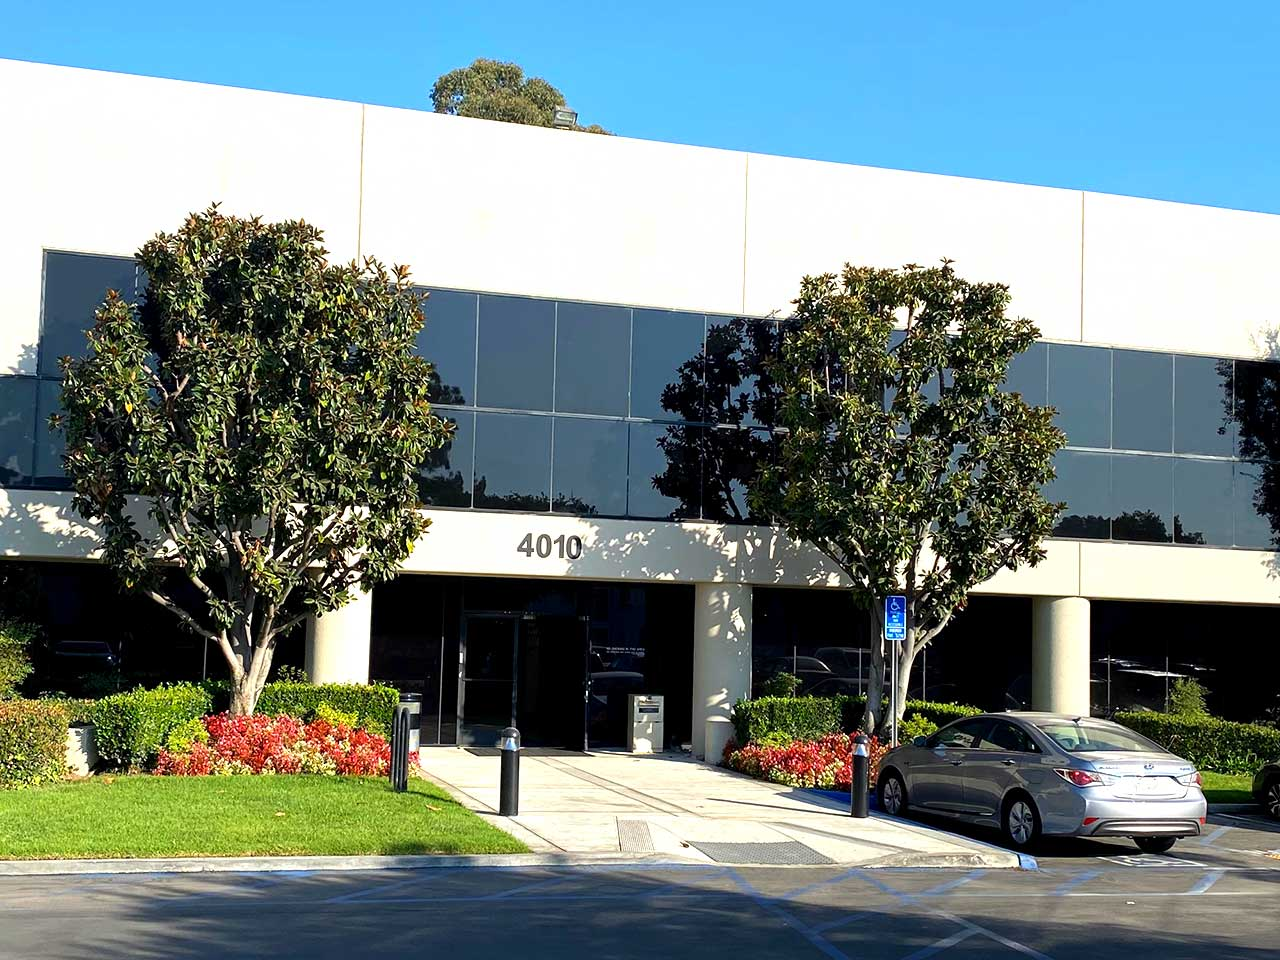 Inszone Insurance Lakewood Office - Lead Image for Lakewood Location